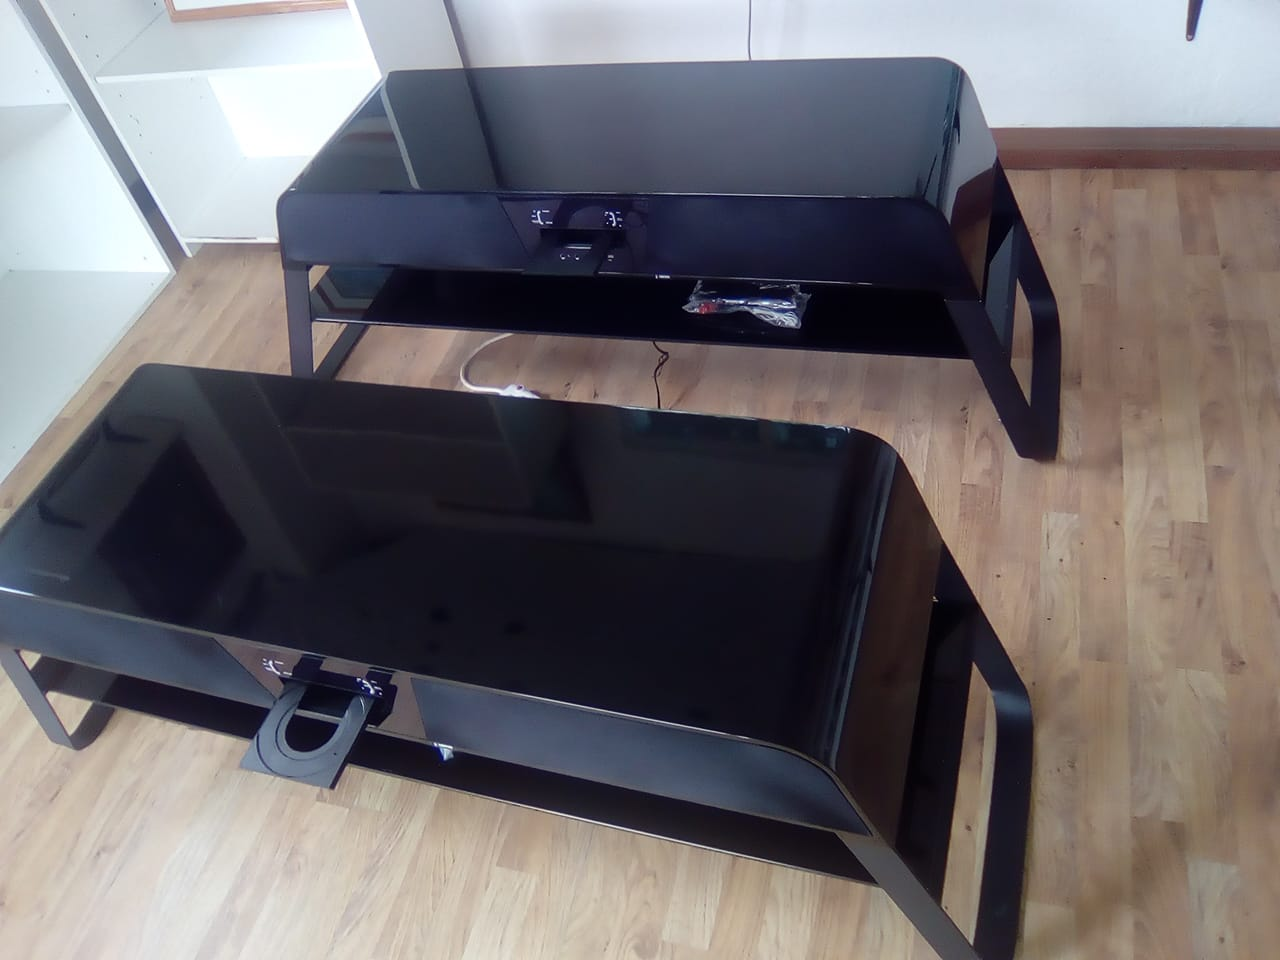 Black Plasma Stand with Built-In Sound